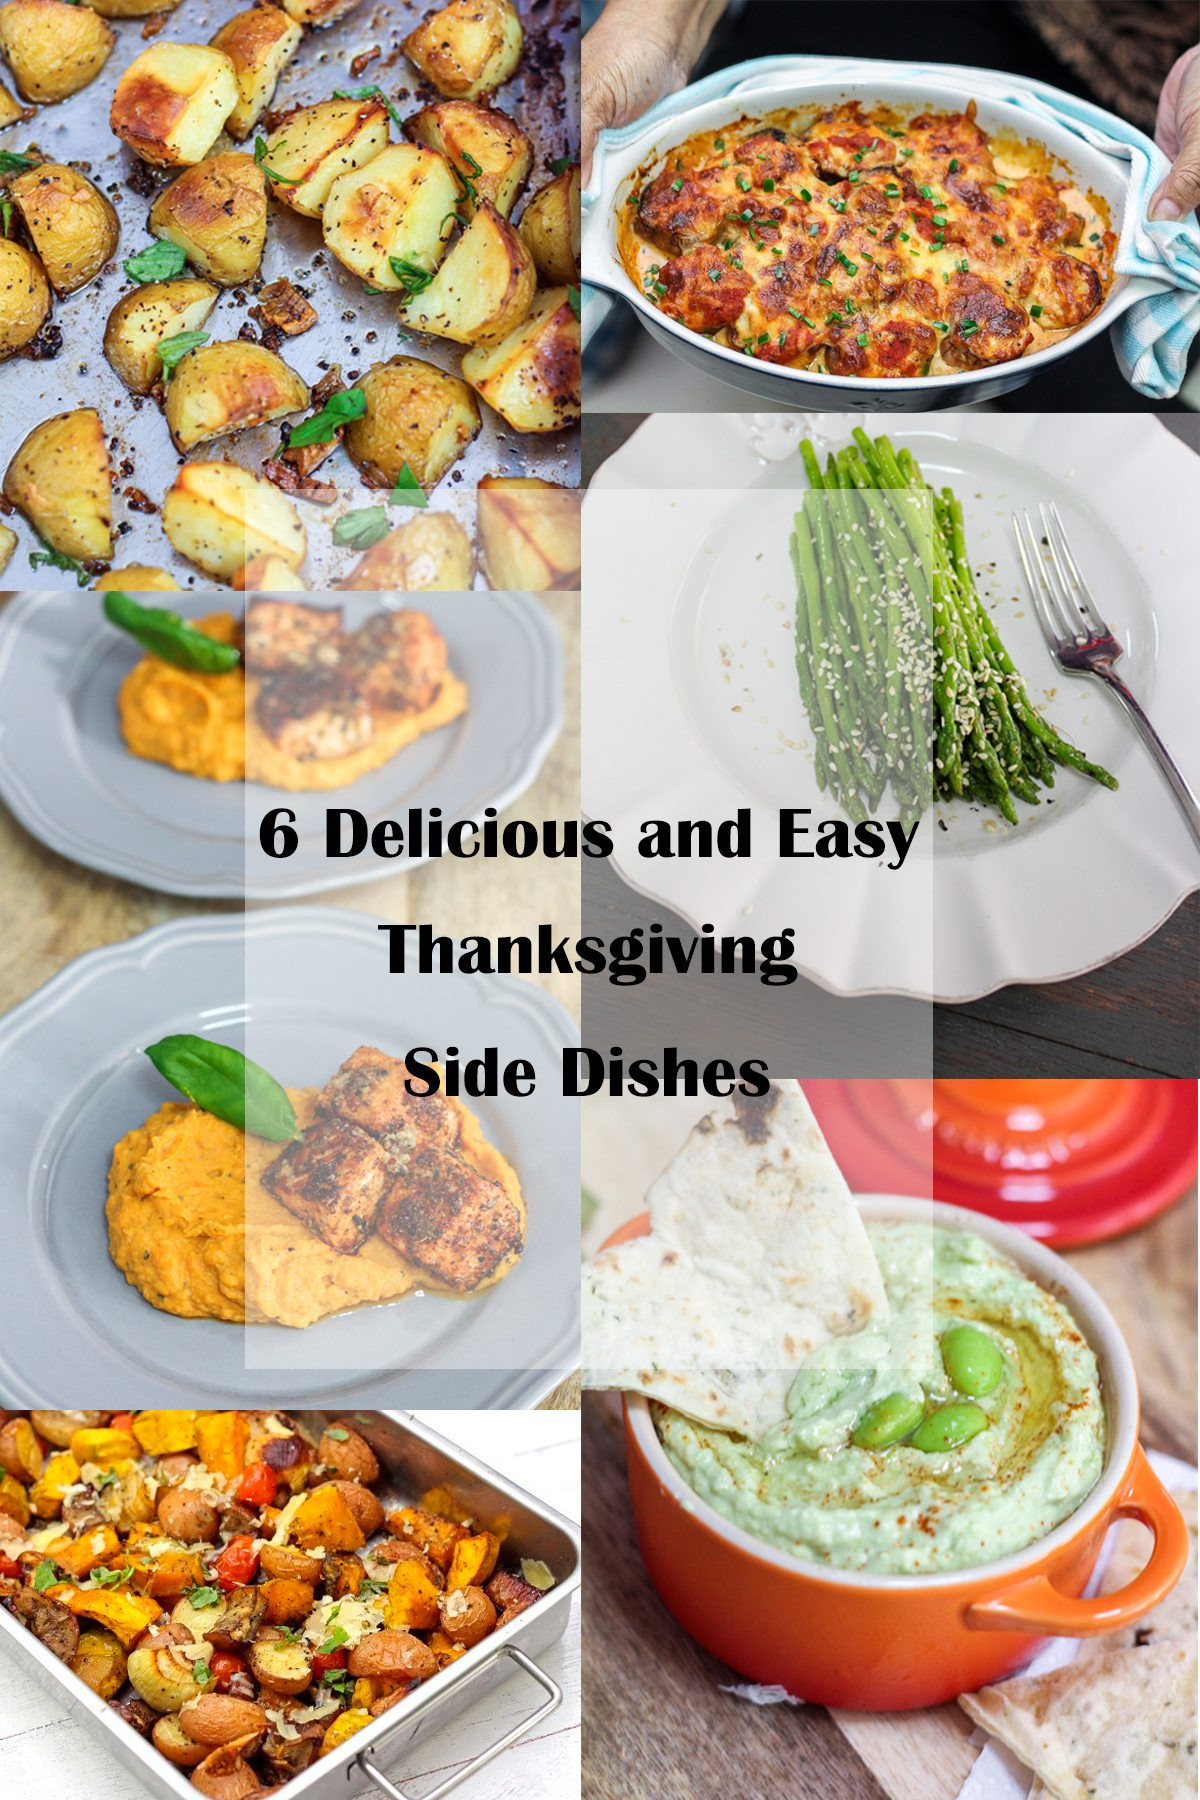 Easy Side Dishes For Thanksgiving Meal  6 Delicious and Easy Thanksgiving Side Dishes